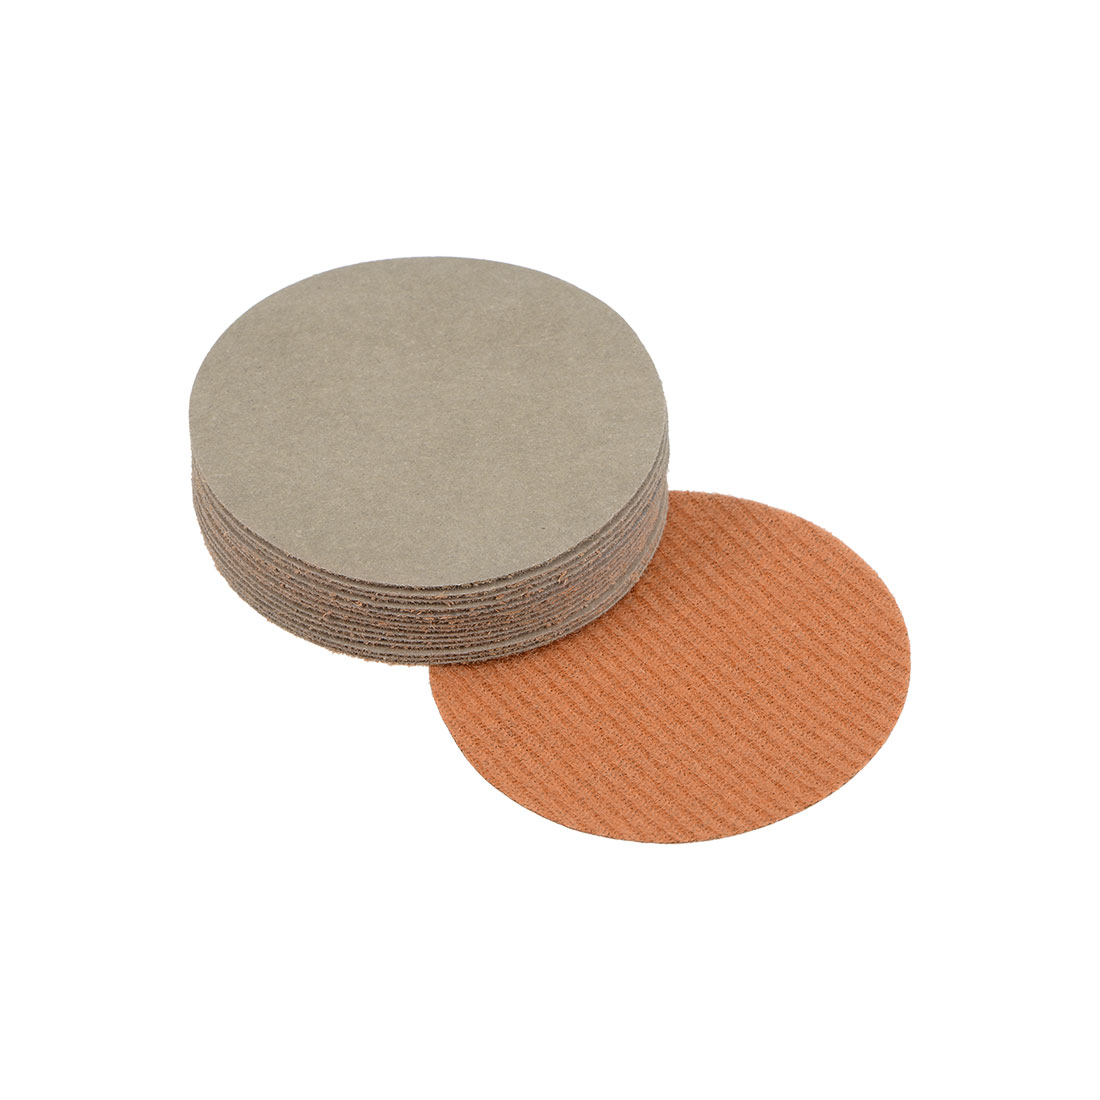 2 inch Wet Dry Discs 10000 Grit Hook and Loop Sanding Disc Silicon Carbide 15pcs